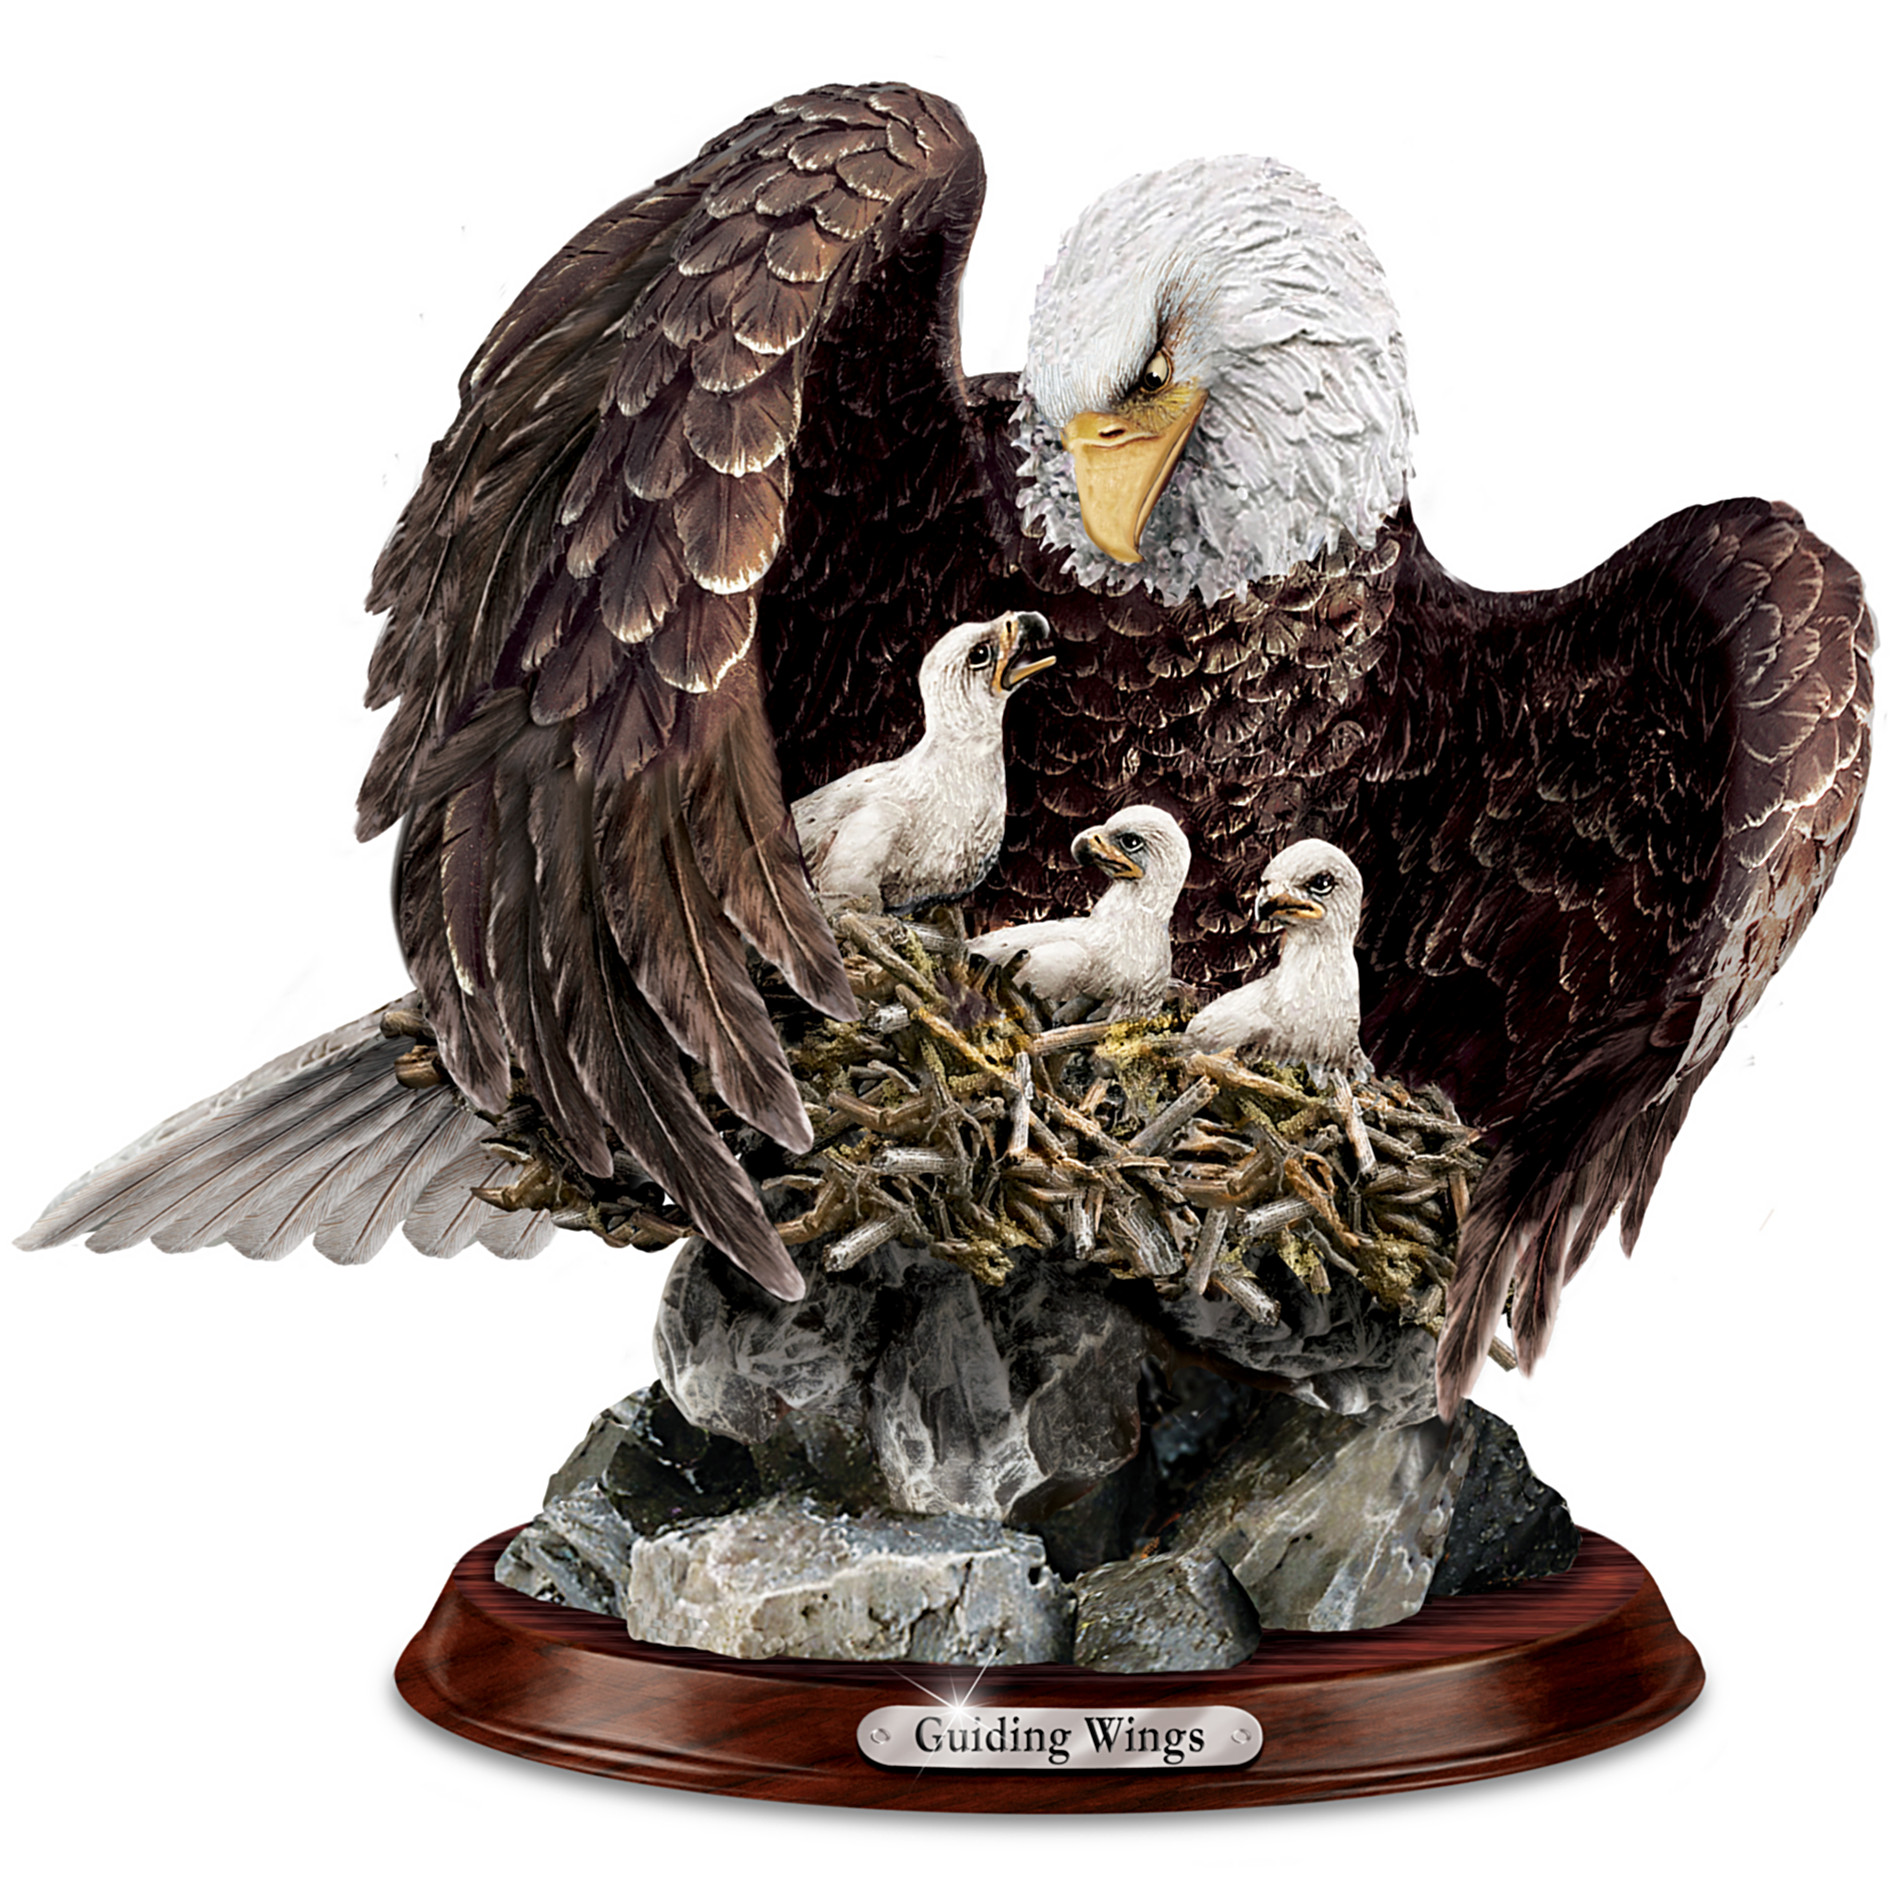 The Bradford Exchange Bald Eagle Sculpture: Guiding Wings at Sears.com